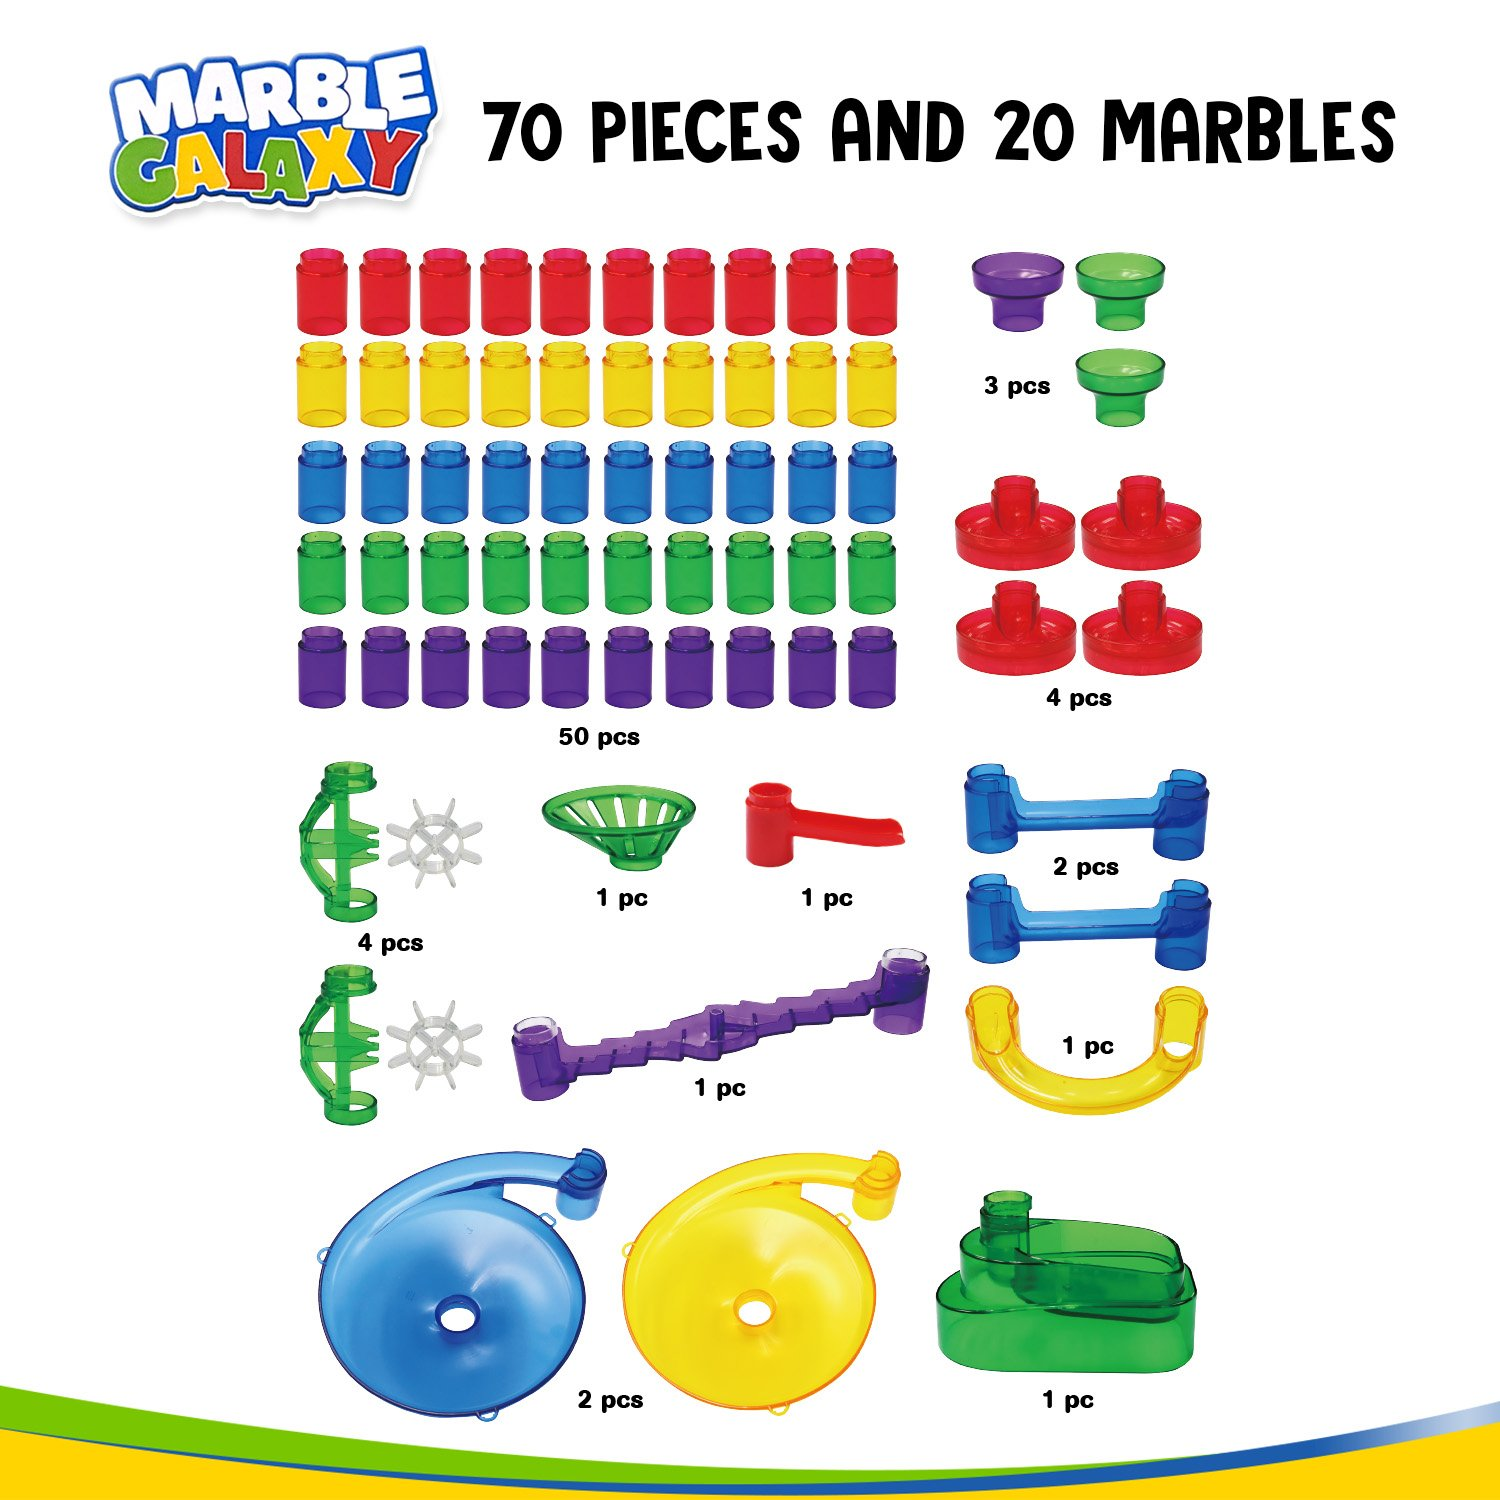 Marble Galaxy Fun Run Set Game Educational STEM Toy Building Construction Games Translucent Marble Maze Race Track Discovery Toys Marble Run Sets for Kids 90 Marbulous Pcs /& Glass Marbles WhizBuilders